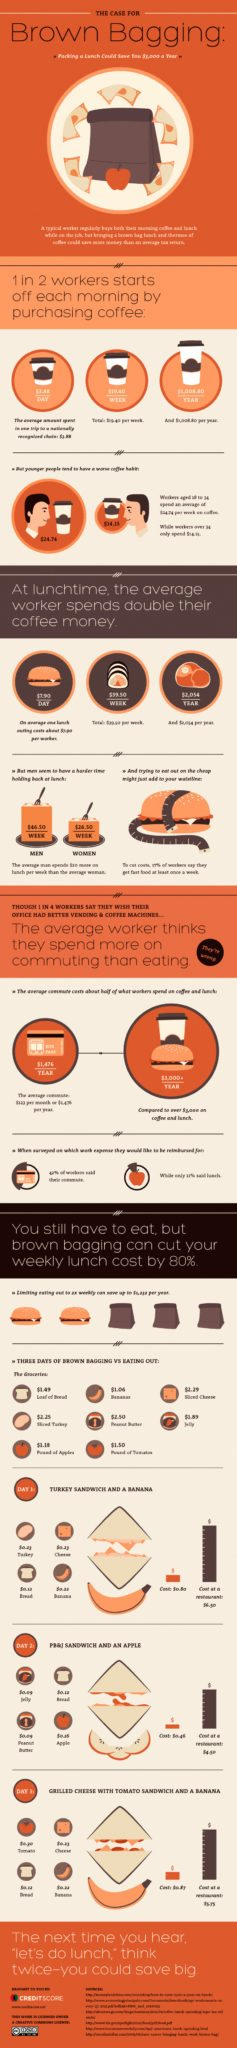 Brown Bagging Infographic